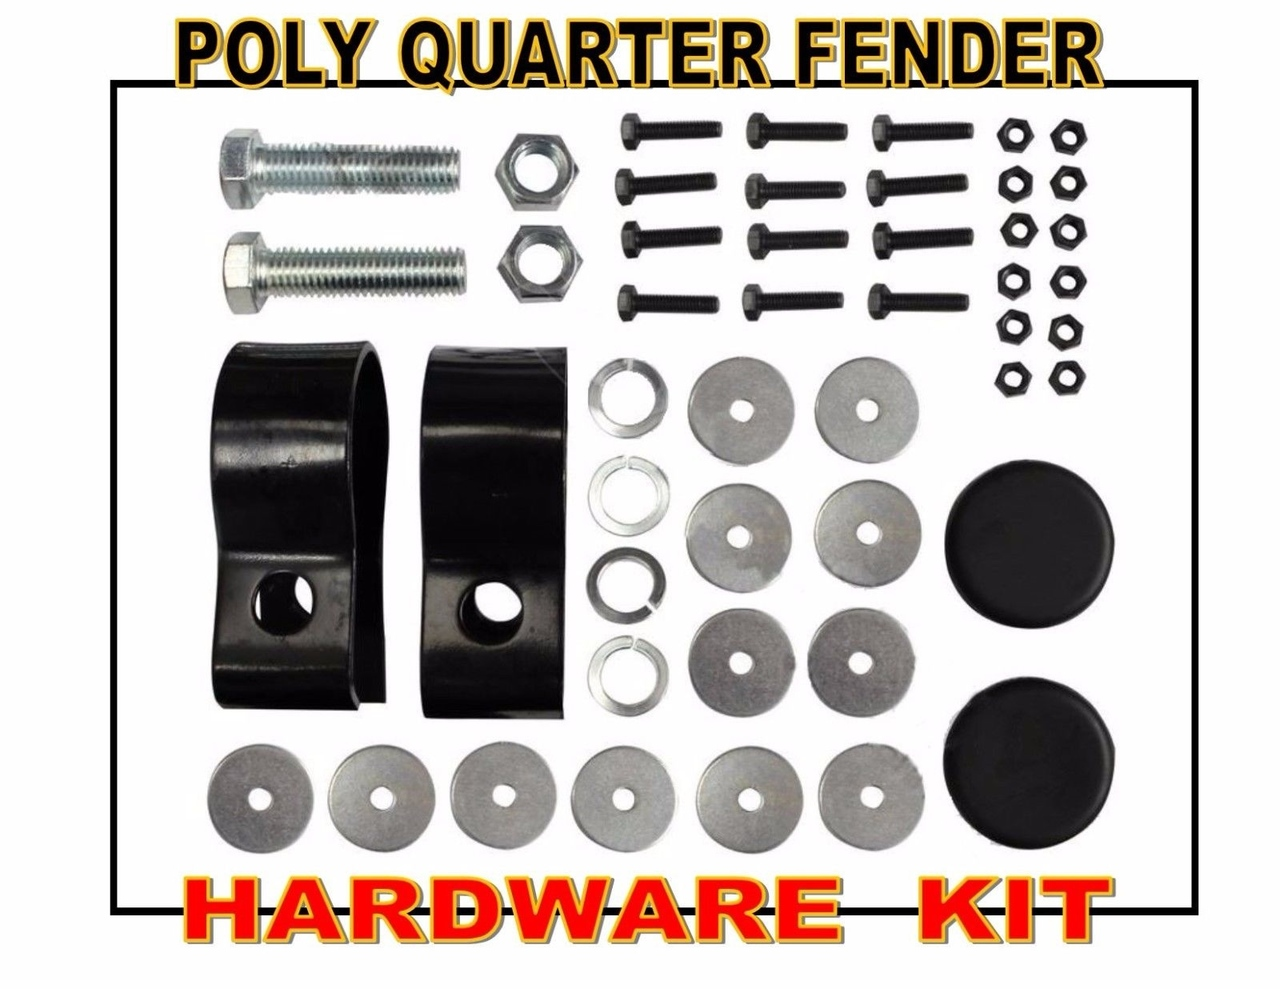 HARDWARE KIT For Poly Quarter Fenders -  Clamps - Washers - Bolts - End Caps